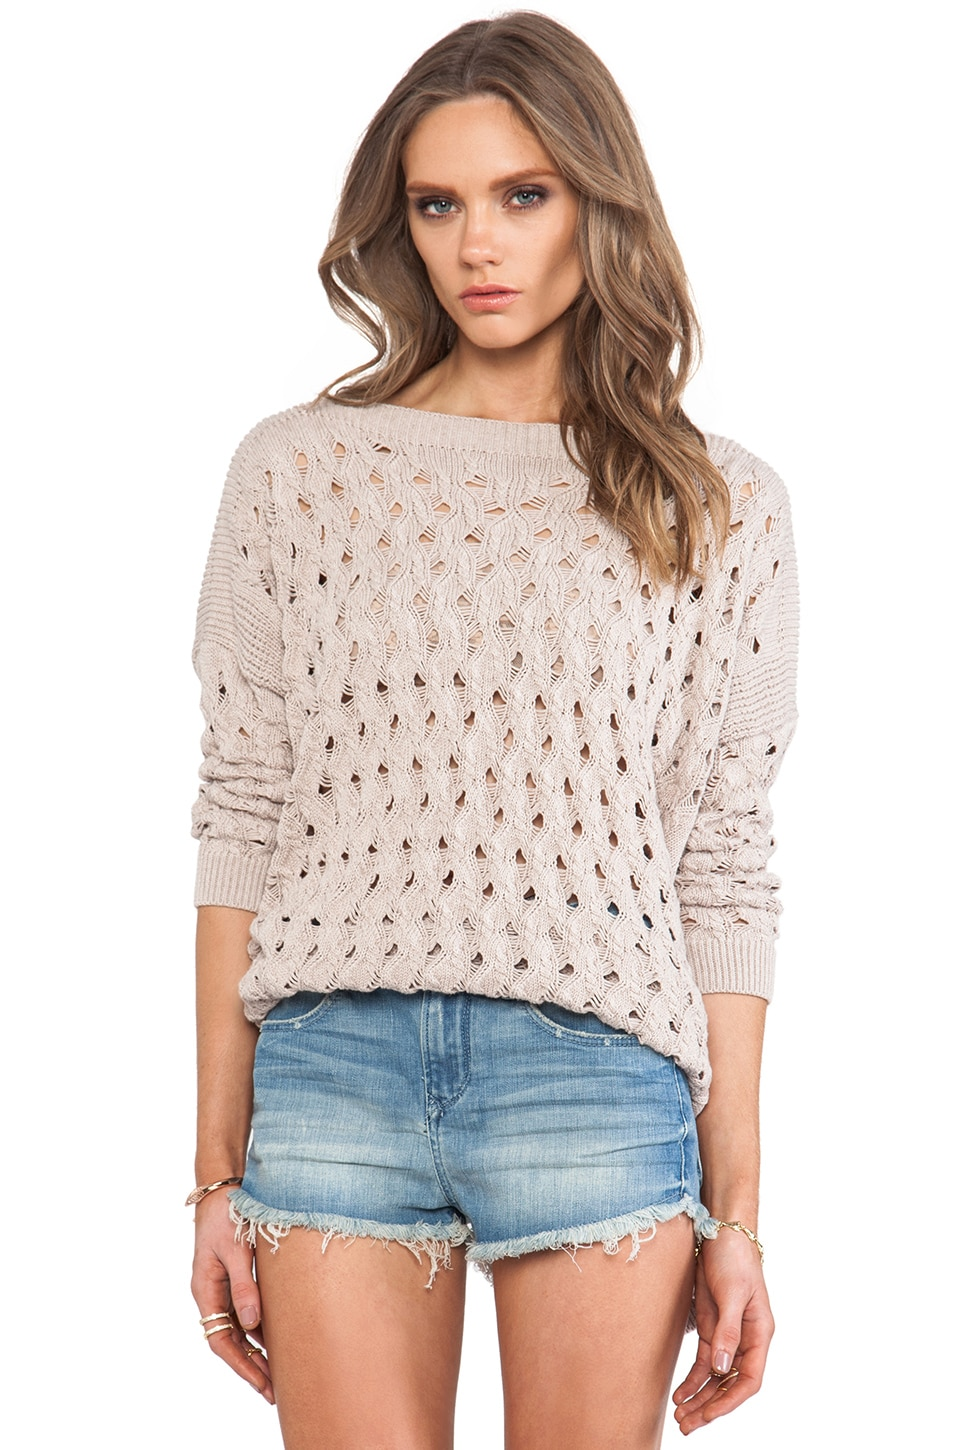 Autumn Cashmere Open Stitch Hi Low Boatneck Sweater in Beech